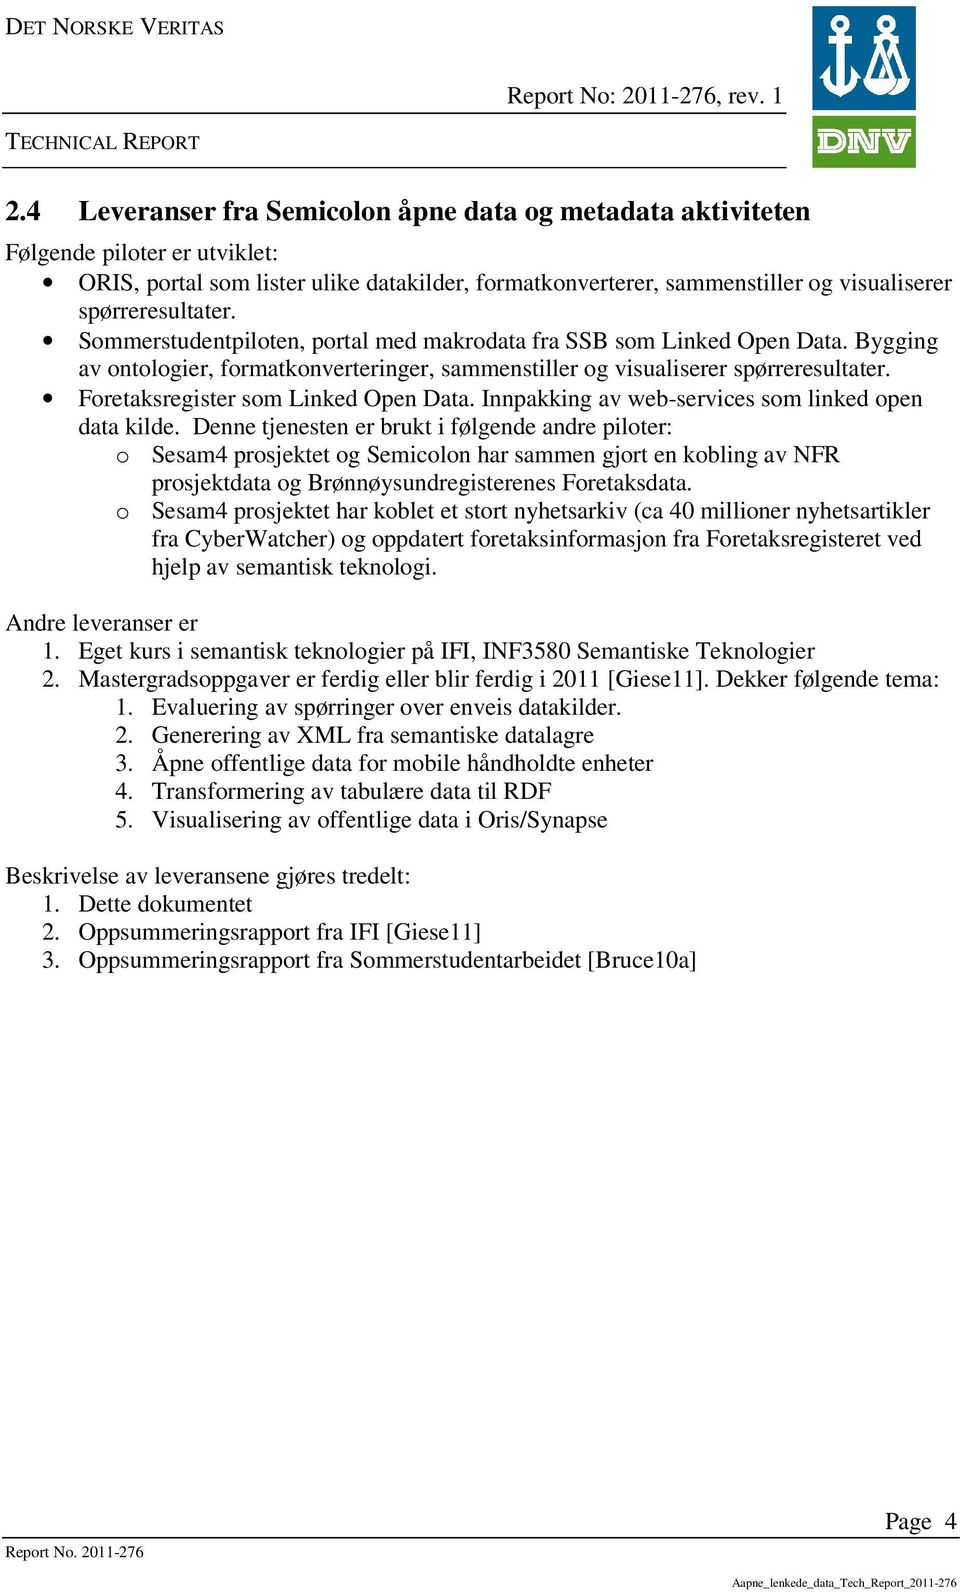 Foretaksregister som Linked Open Data. Innpakking av web-services som linked open data kilde.